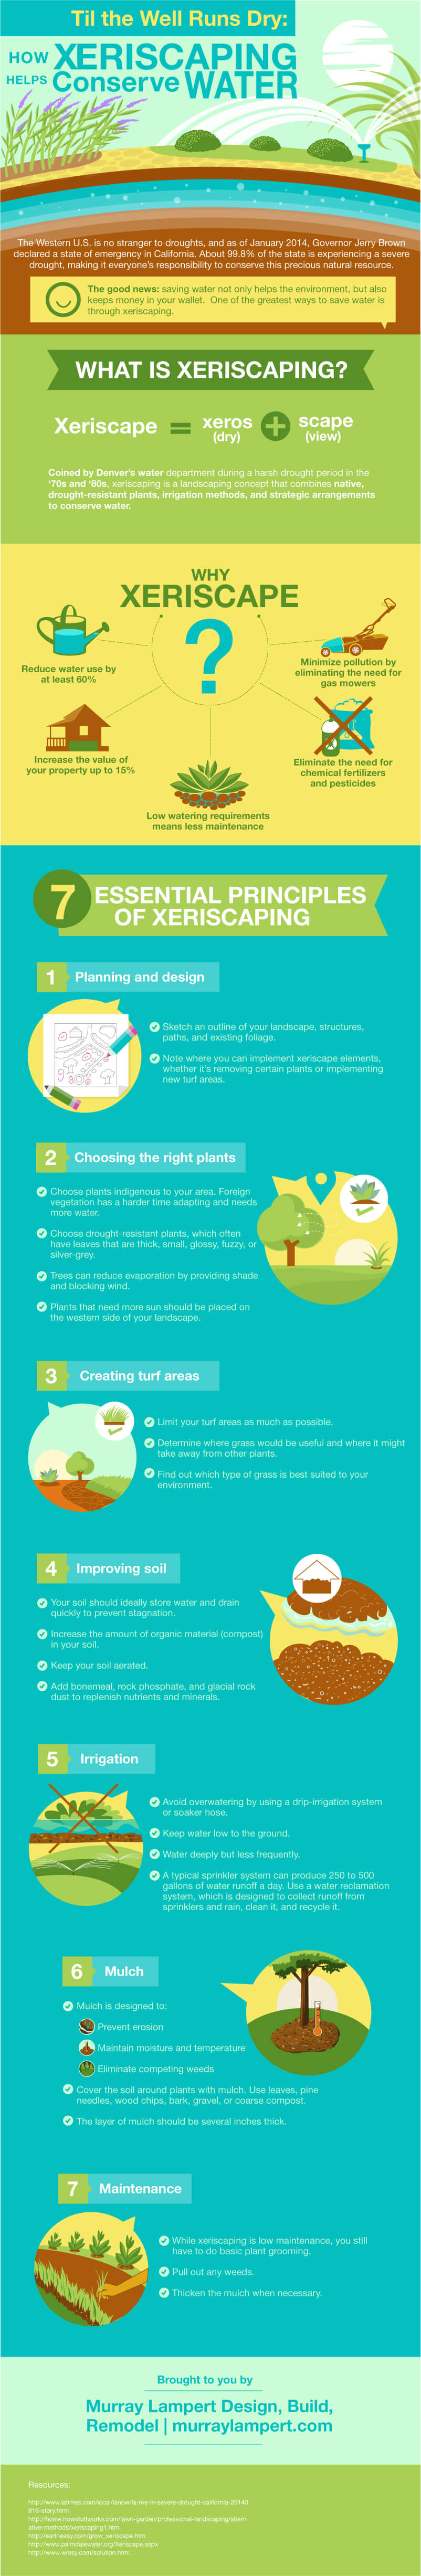 Xeriscaping Water Conservation Infographic